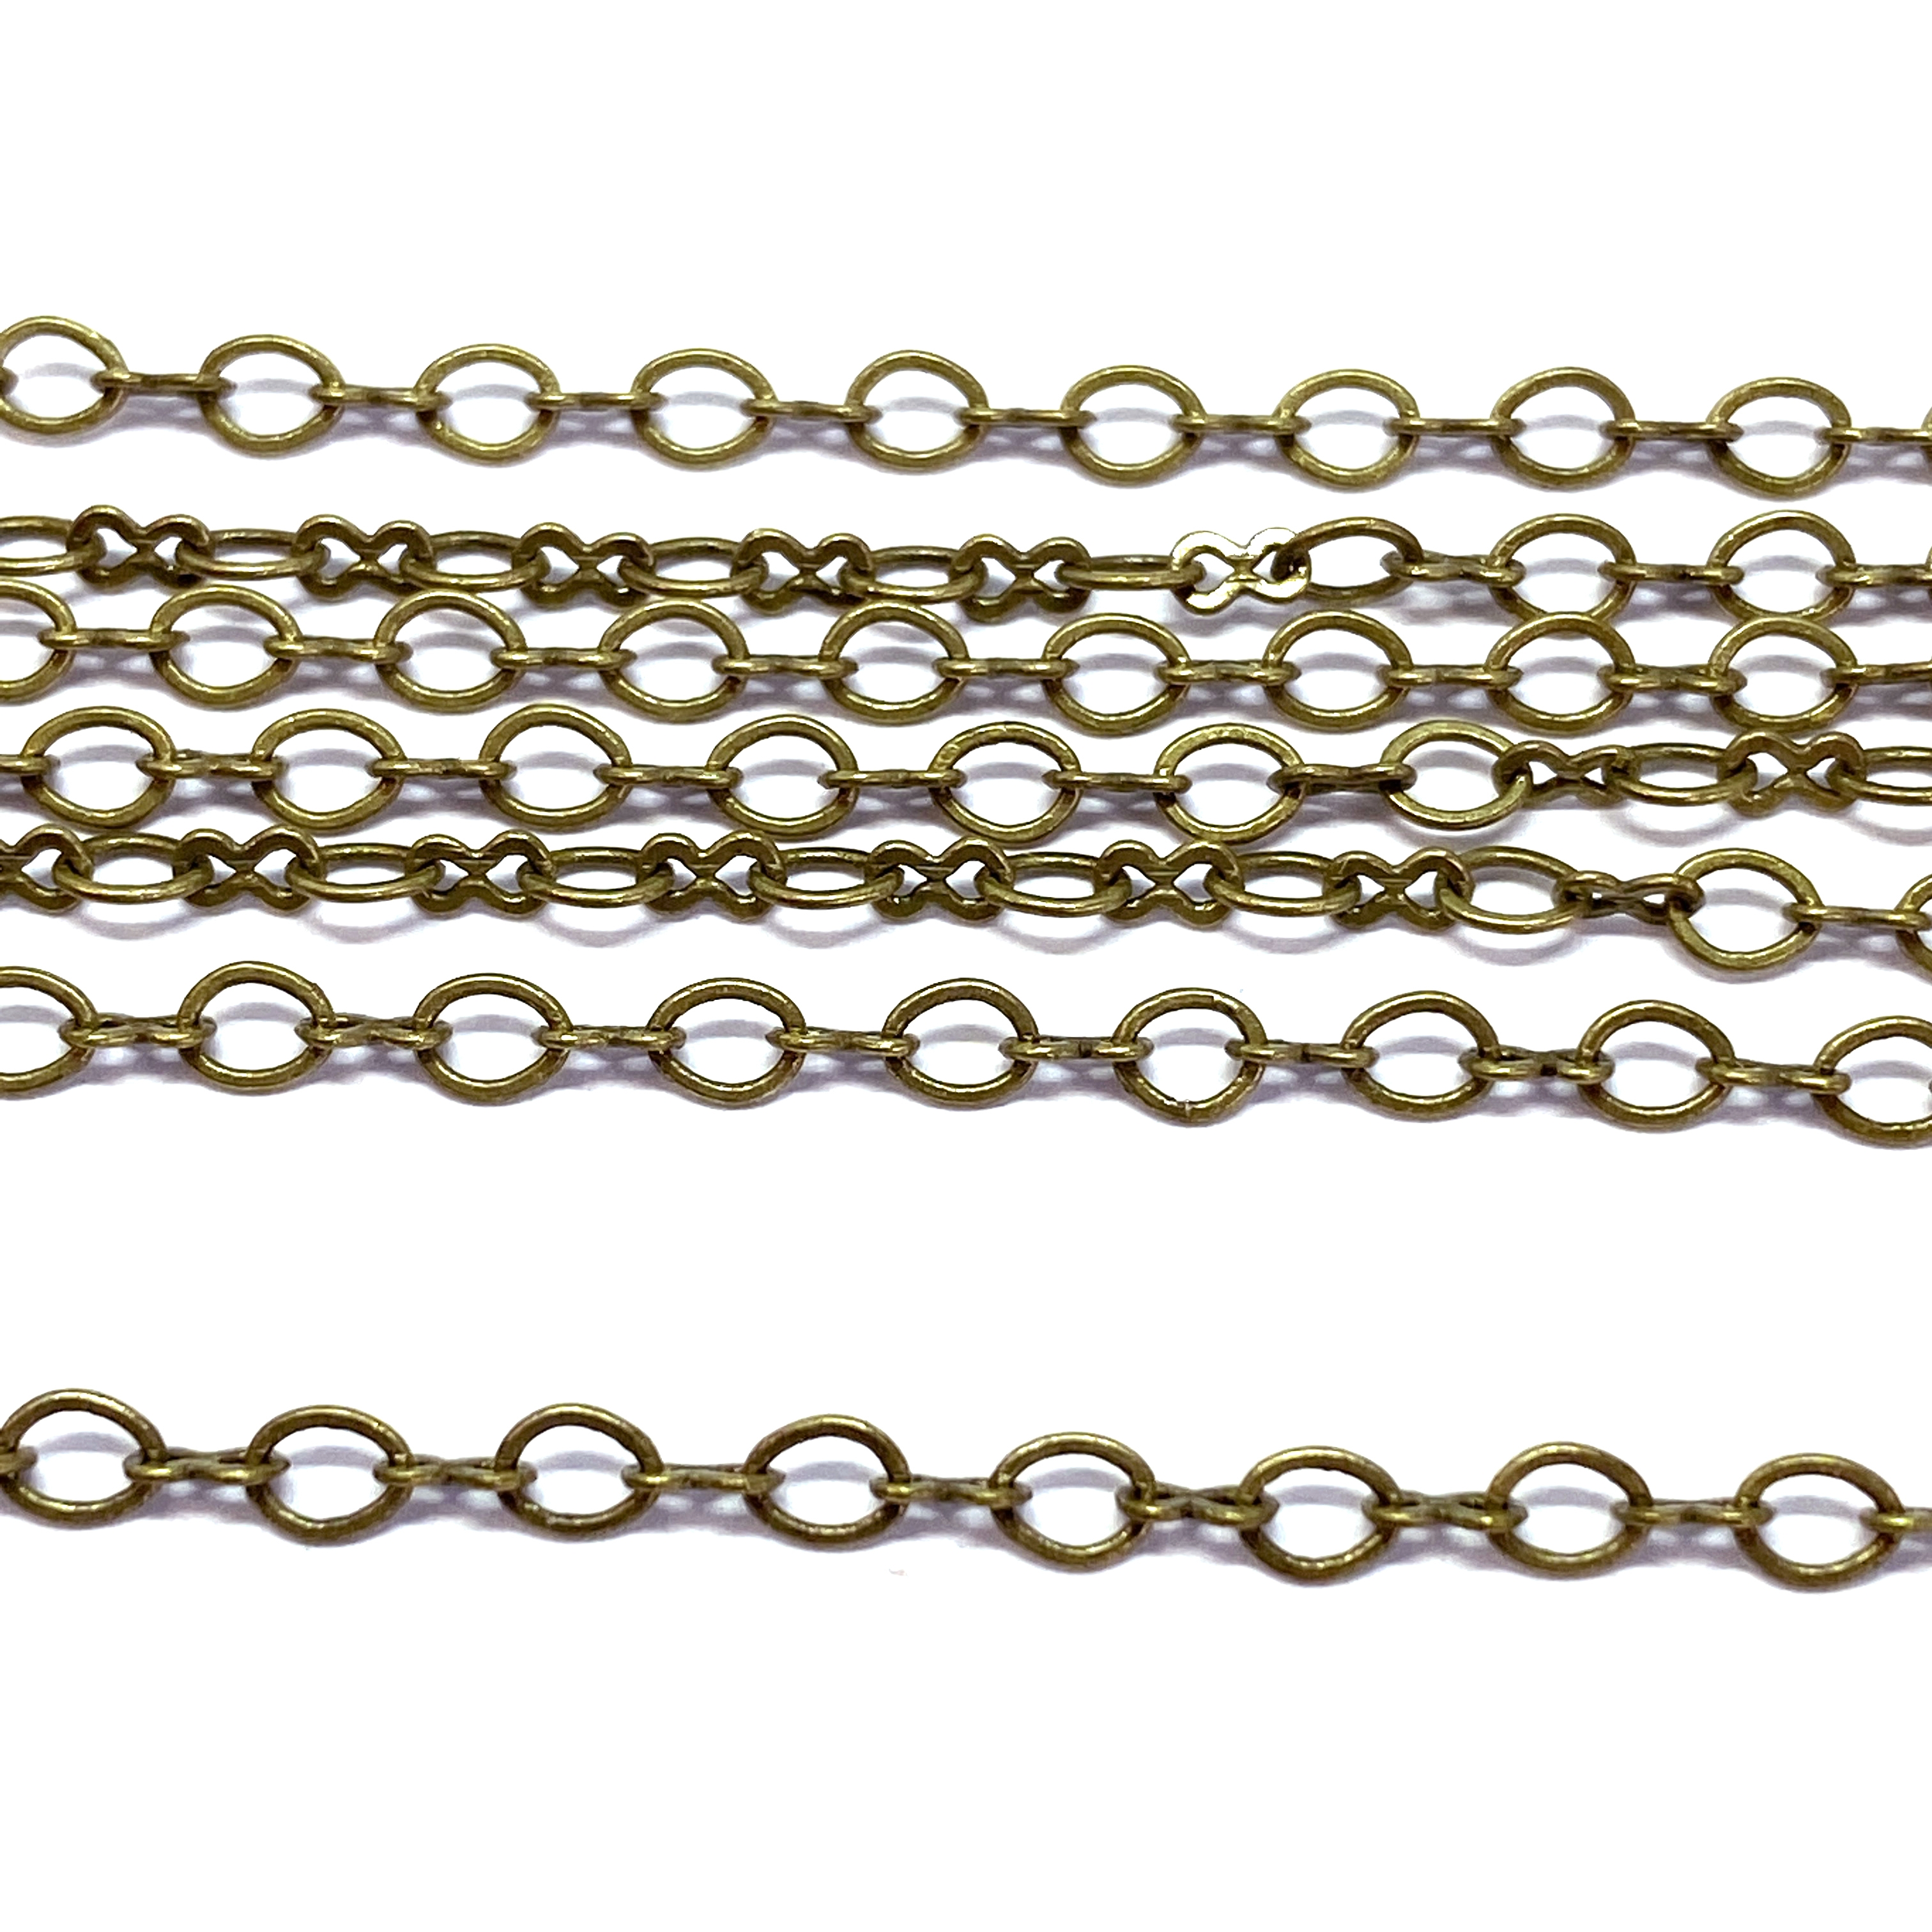 brass ox plated oval chain, peanut links, 01480, oval chain, antique brass chain, delicate chain, B'sue Boutiques, jewelry supplies, jewelry making, findings